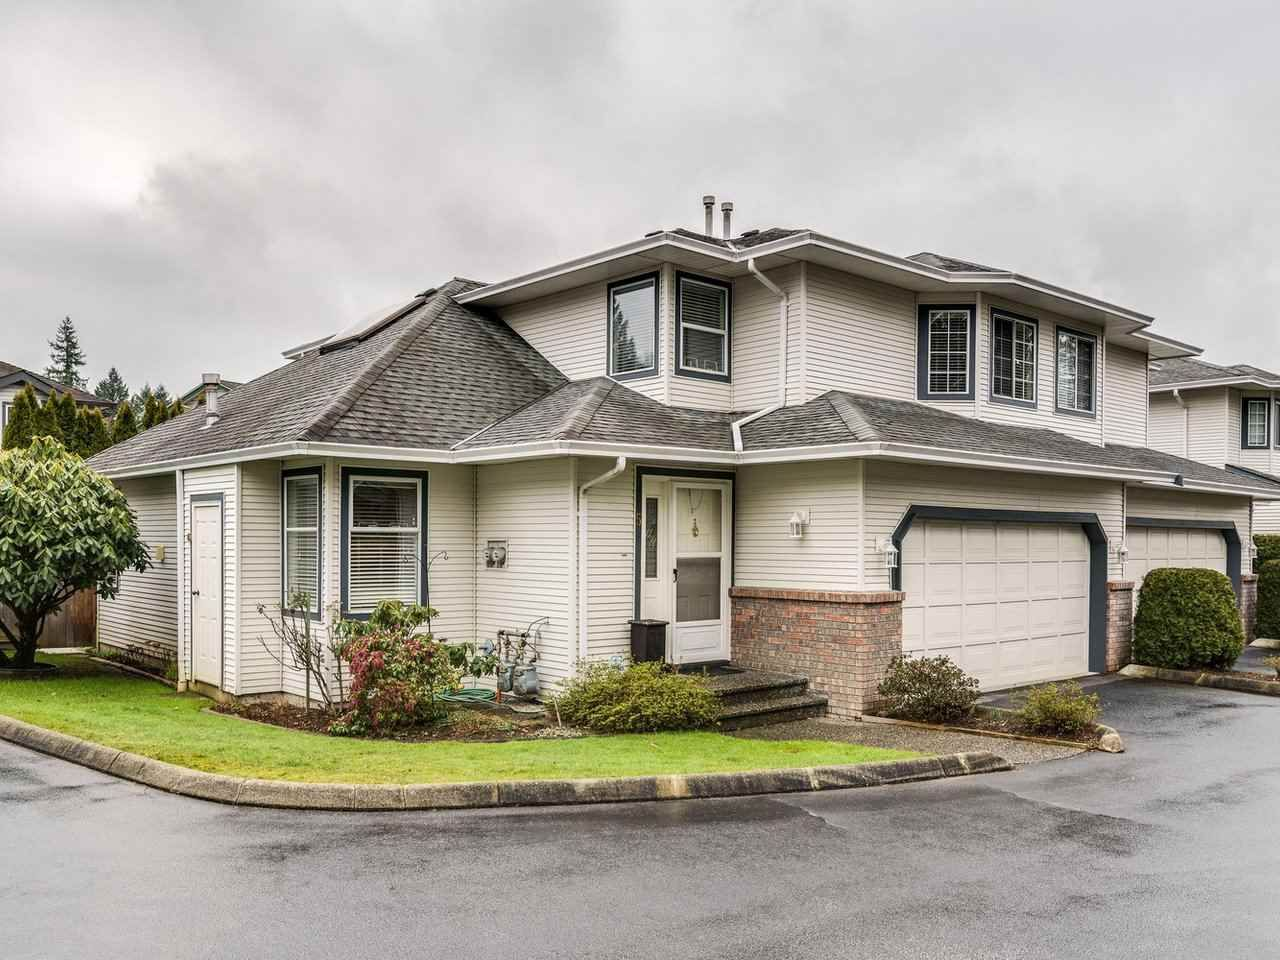 """Main Photo: 5 11534 207 Street in Maple Ridge: Southwest Maple Ridge Townhouse for sale in """"Brittany Court"""" : MLS®# R2439867"""